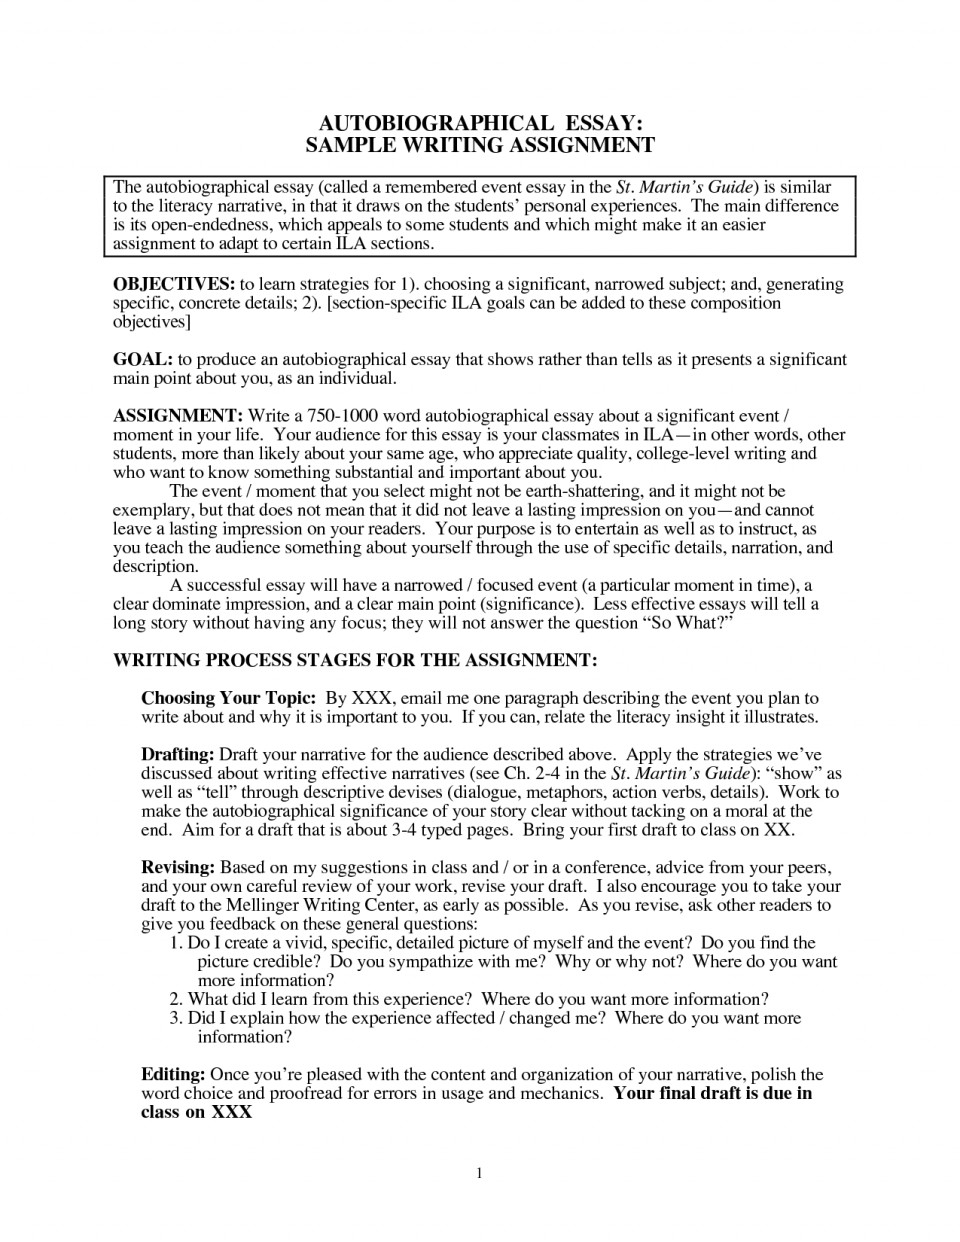 008 Sample Autobiographic Sketch College Autobiography Essay Example Knowing Imagine For Awesome How To Write Exceptional A An Introduction Autobiographical Grad School 960